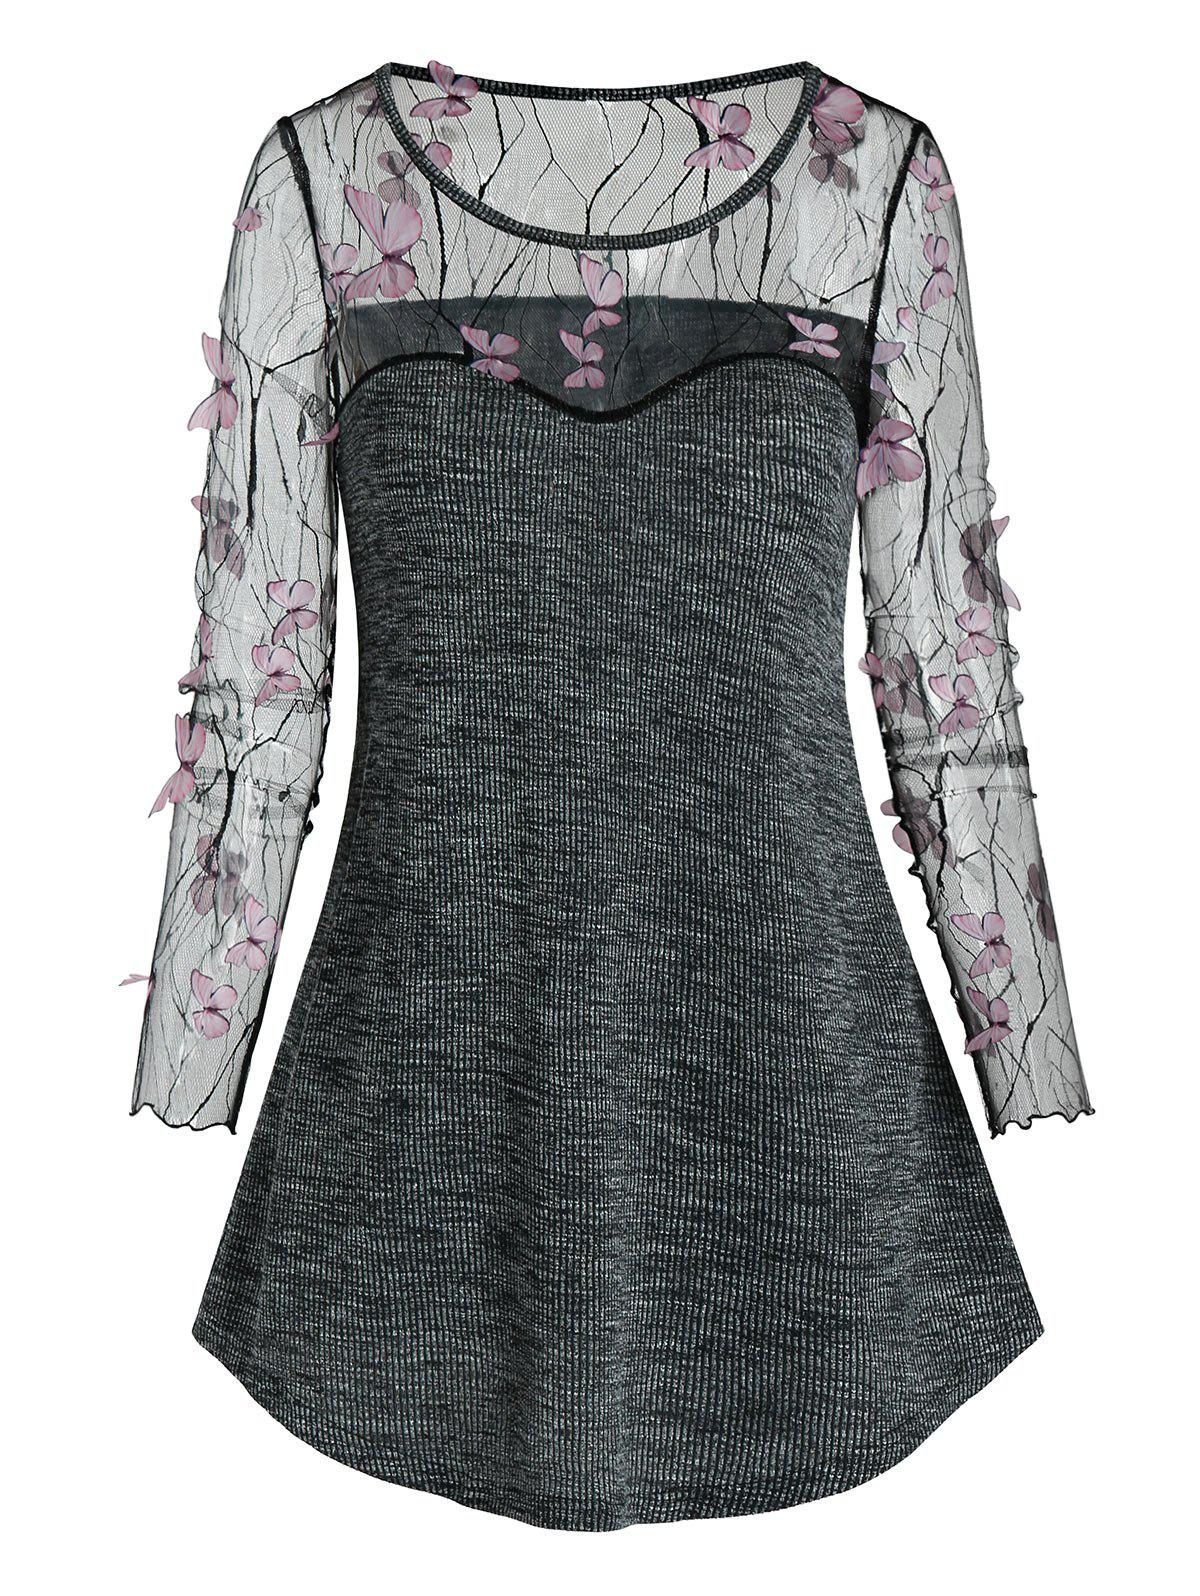 Sheer Butterfly Lace Insert Knitted Casual T Shirt - BLACK L